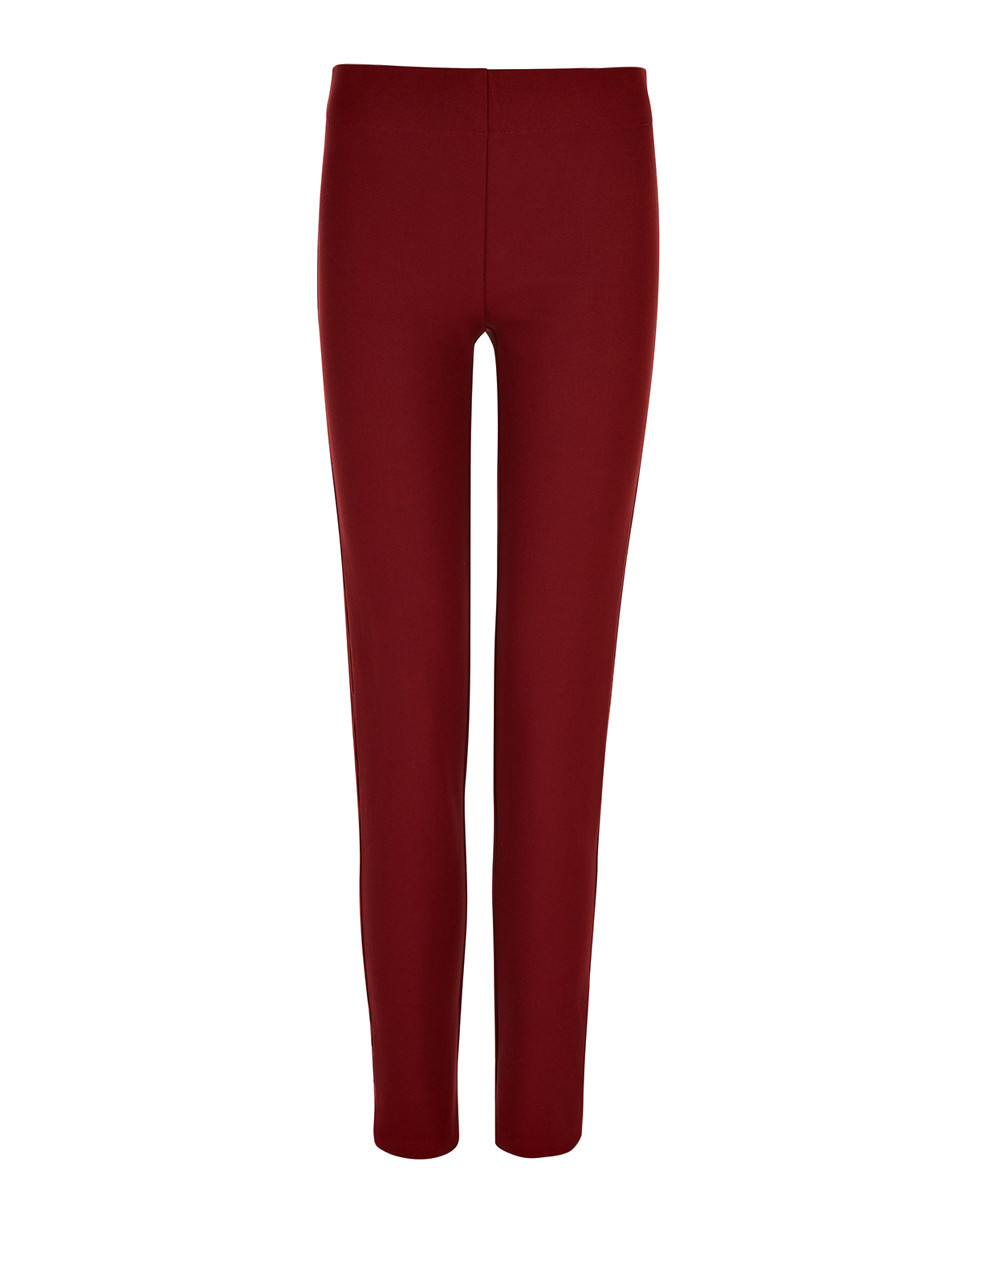 Gabardine Stretch Legging In Oxblood - length: standard; pattern: plain; waist: mid/regular rise; predominant colour: burgundy; occasions: casual, creative work; fibres: viscose/rayon - stretch; fit: slim leg; pattern type: fabric; texture group: woven light midweight; style: standard; season: s/s 2016; wardrobe: highlight